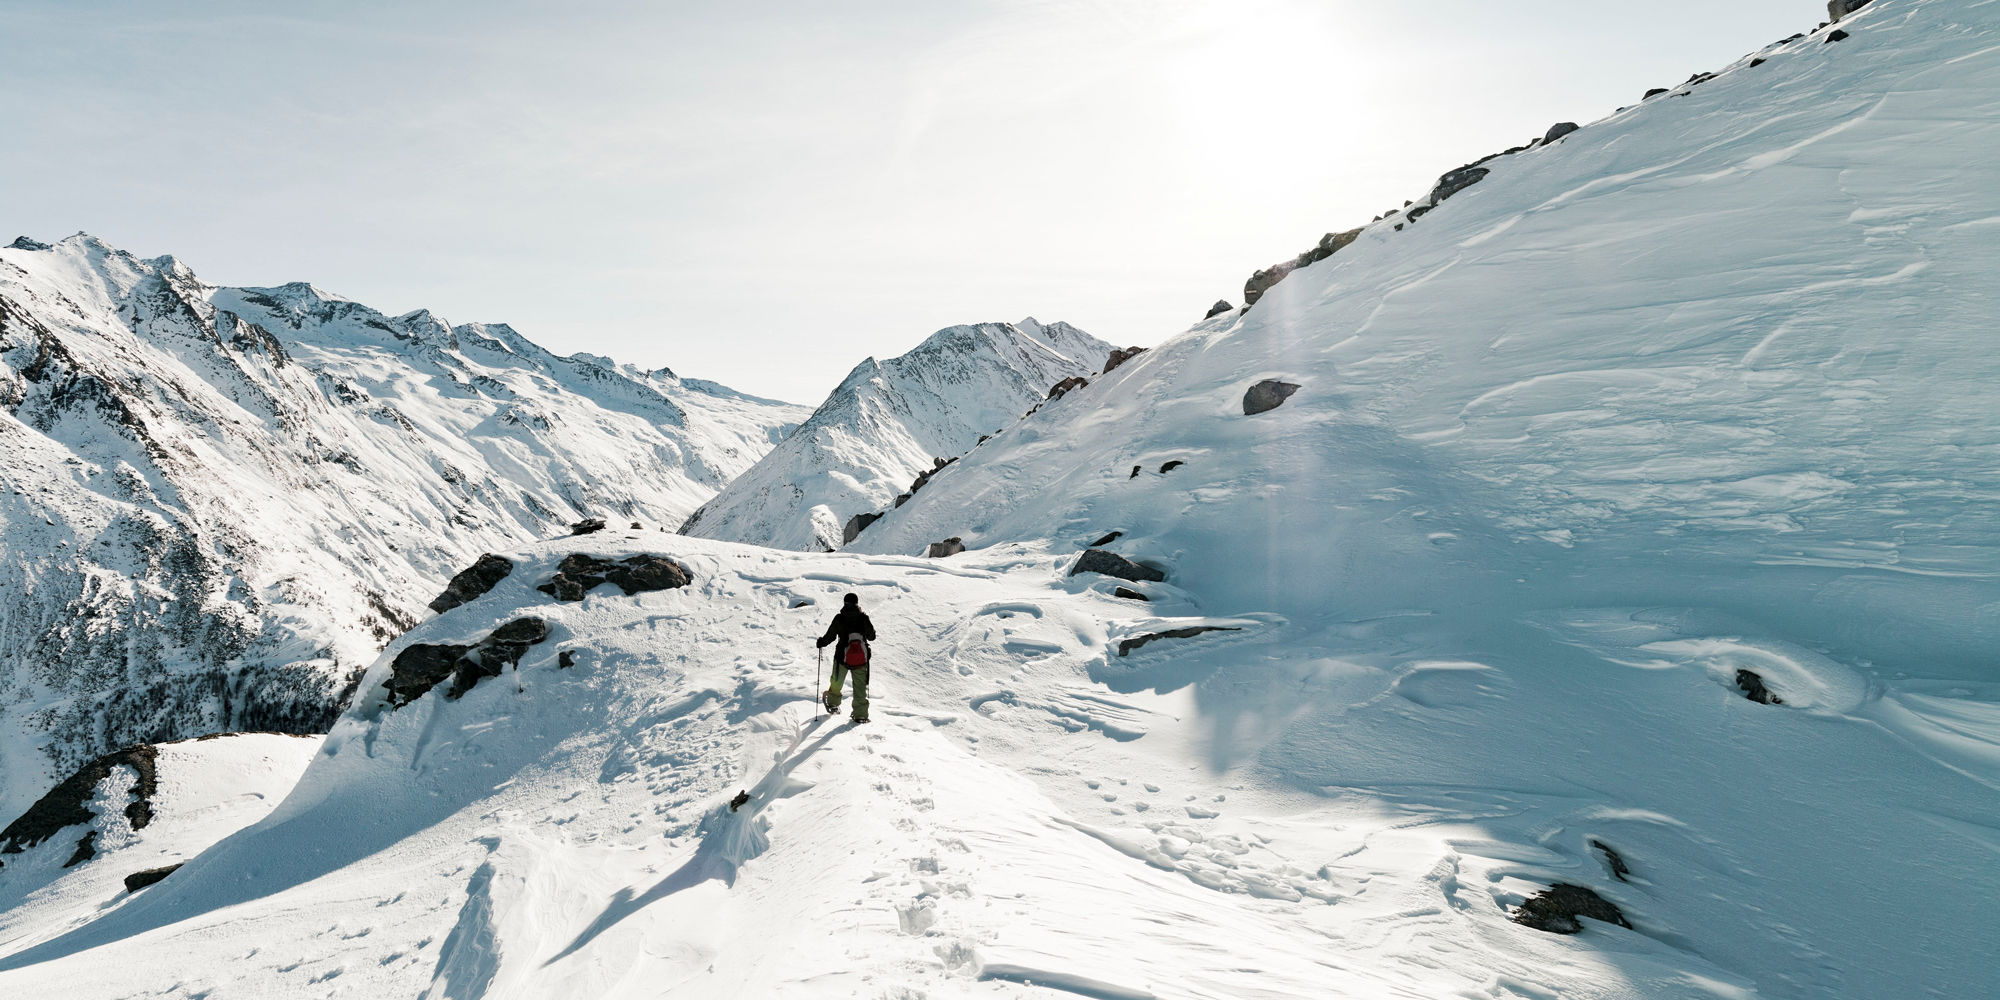 Winterwandern in der Freien Ferienrepublik Saas-Fee